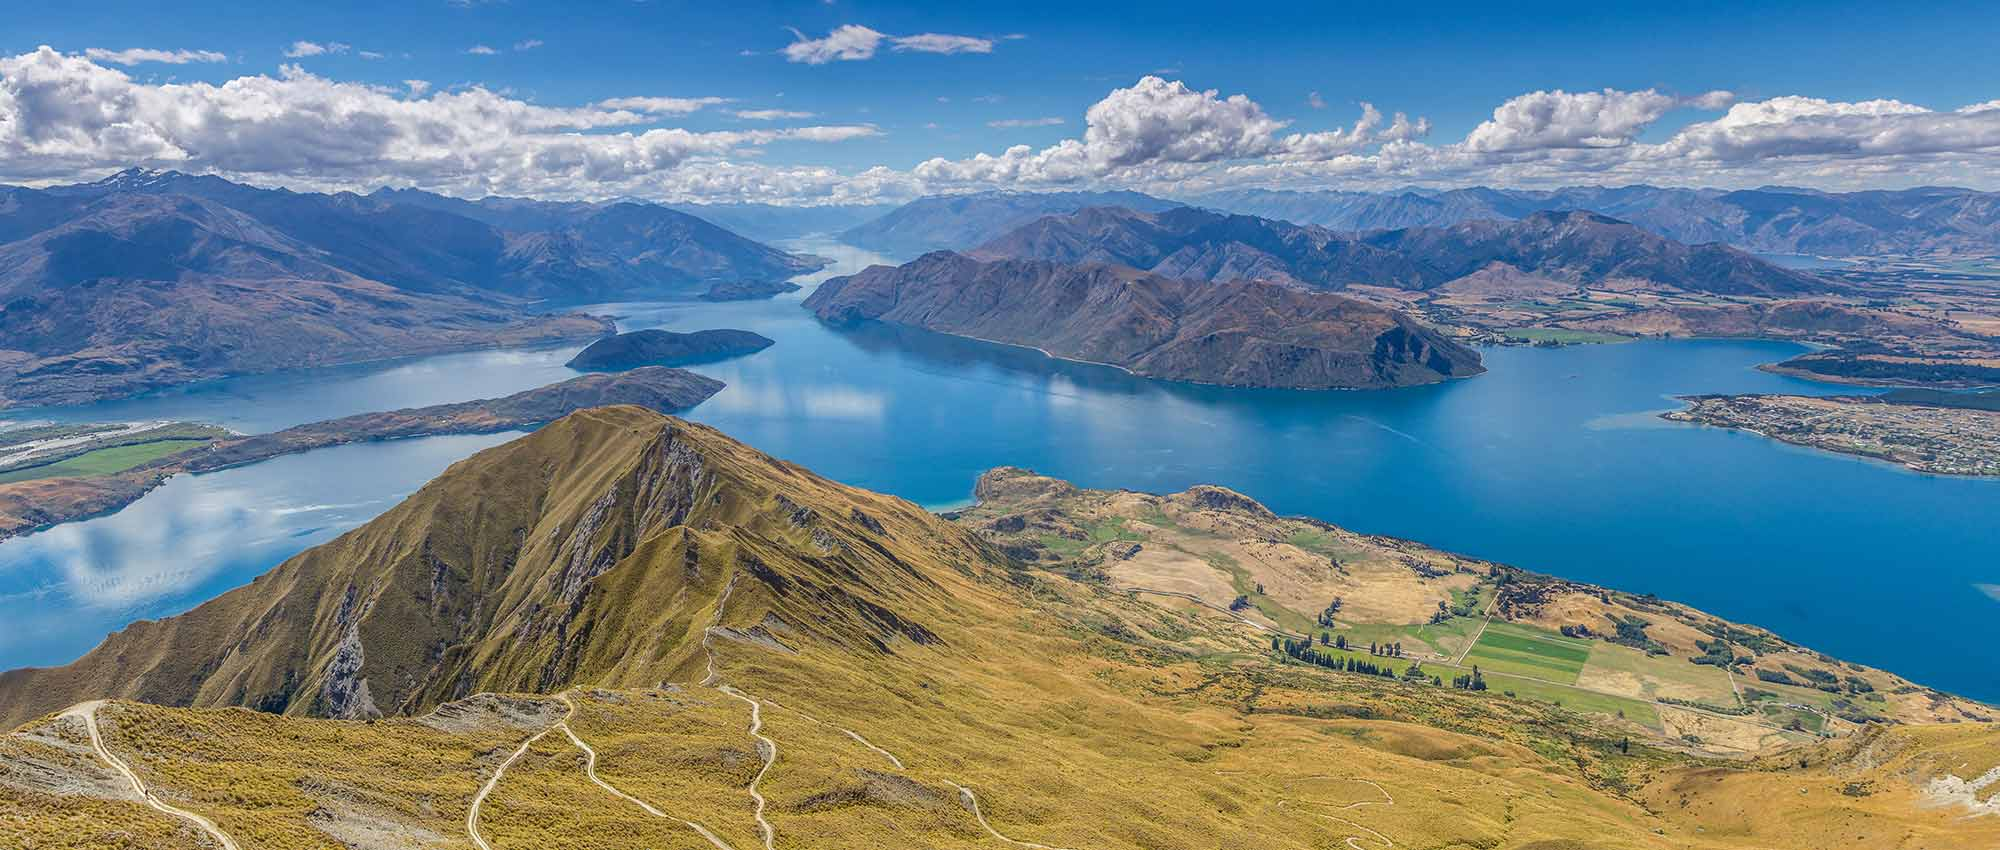 image of New Zealand mountains